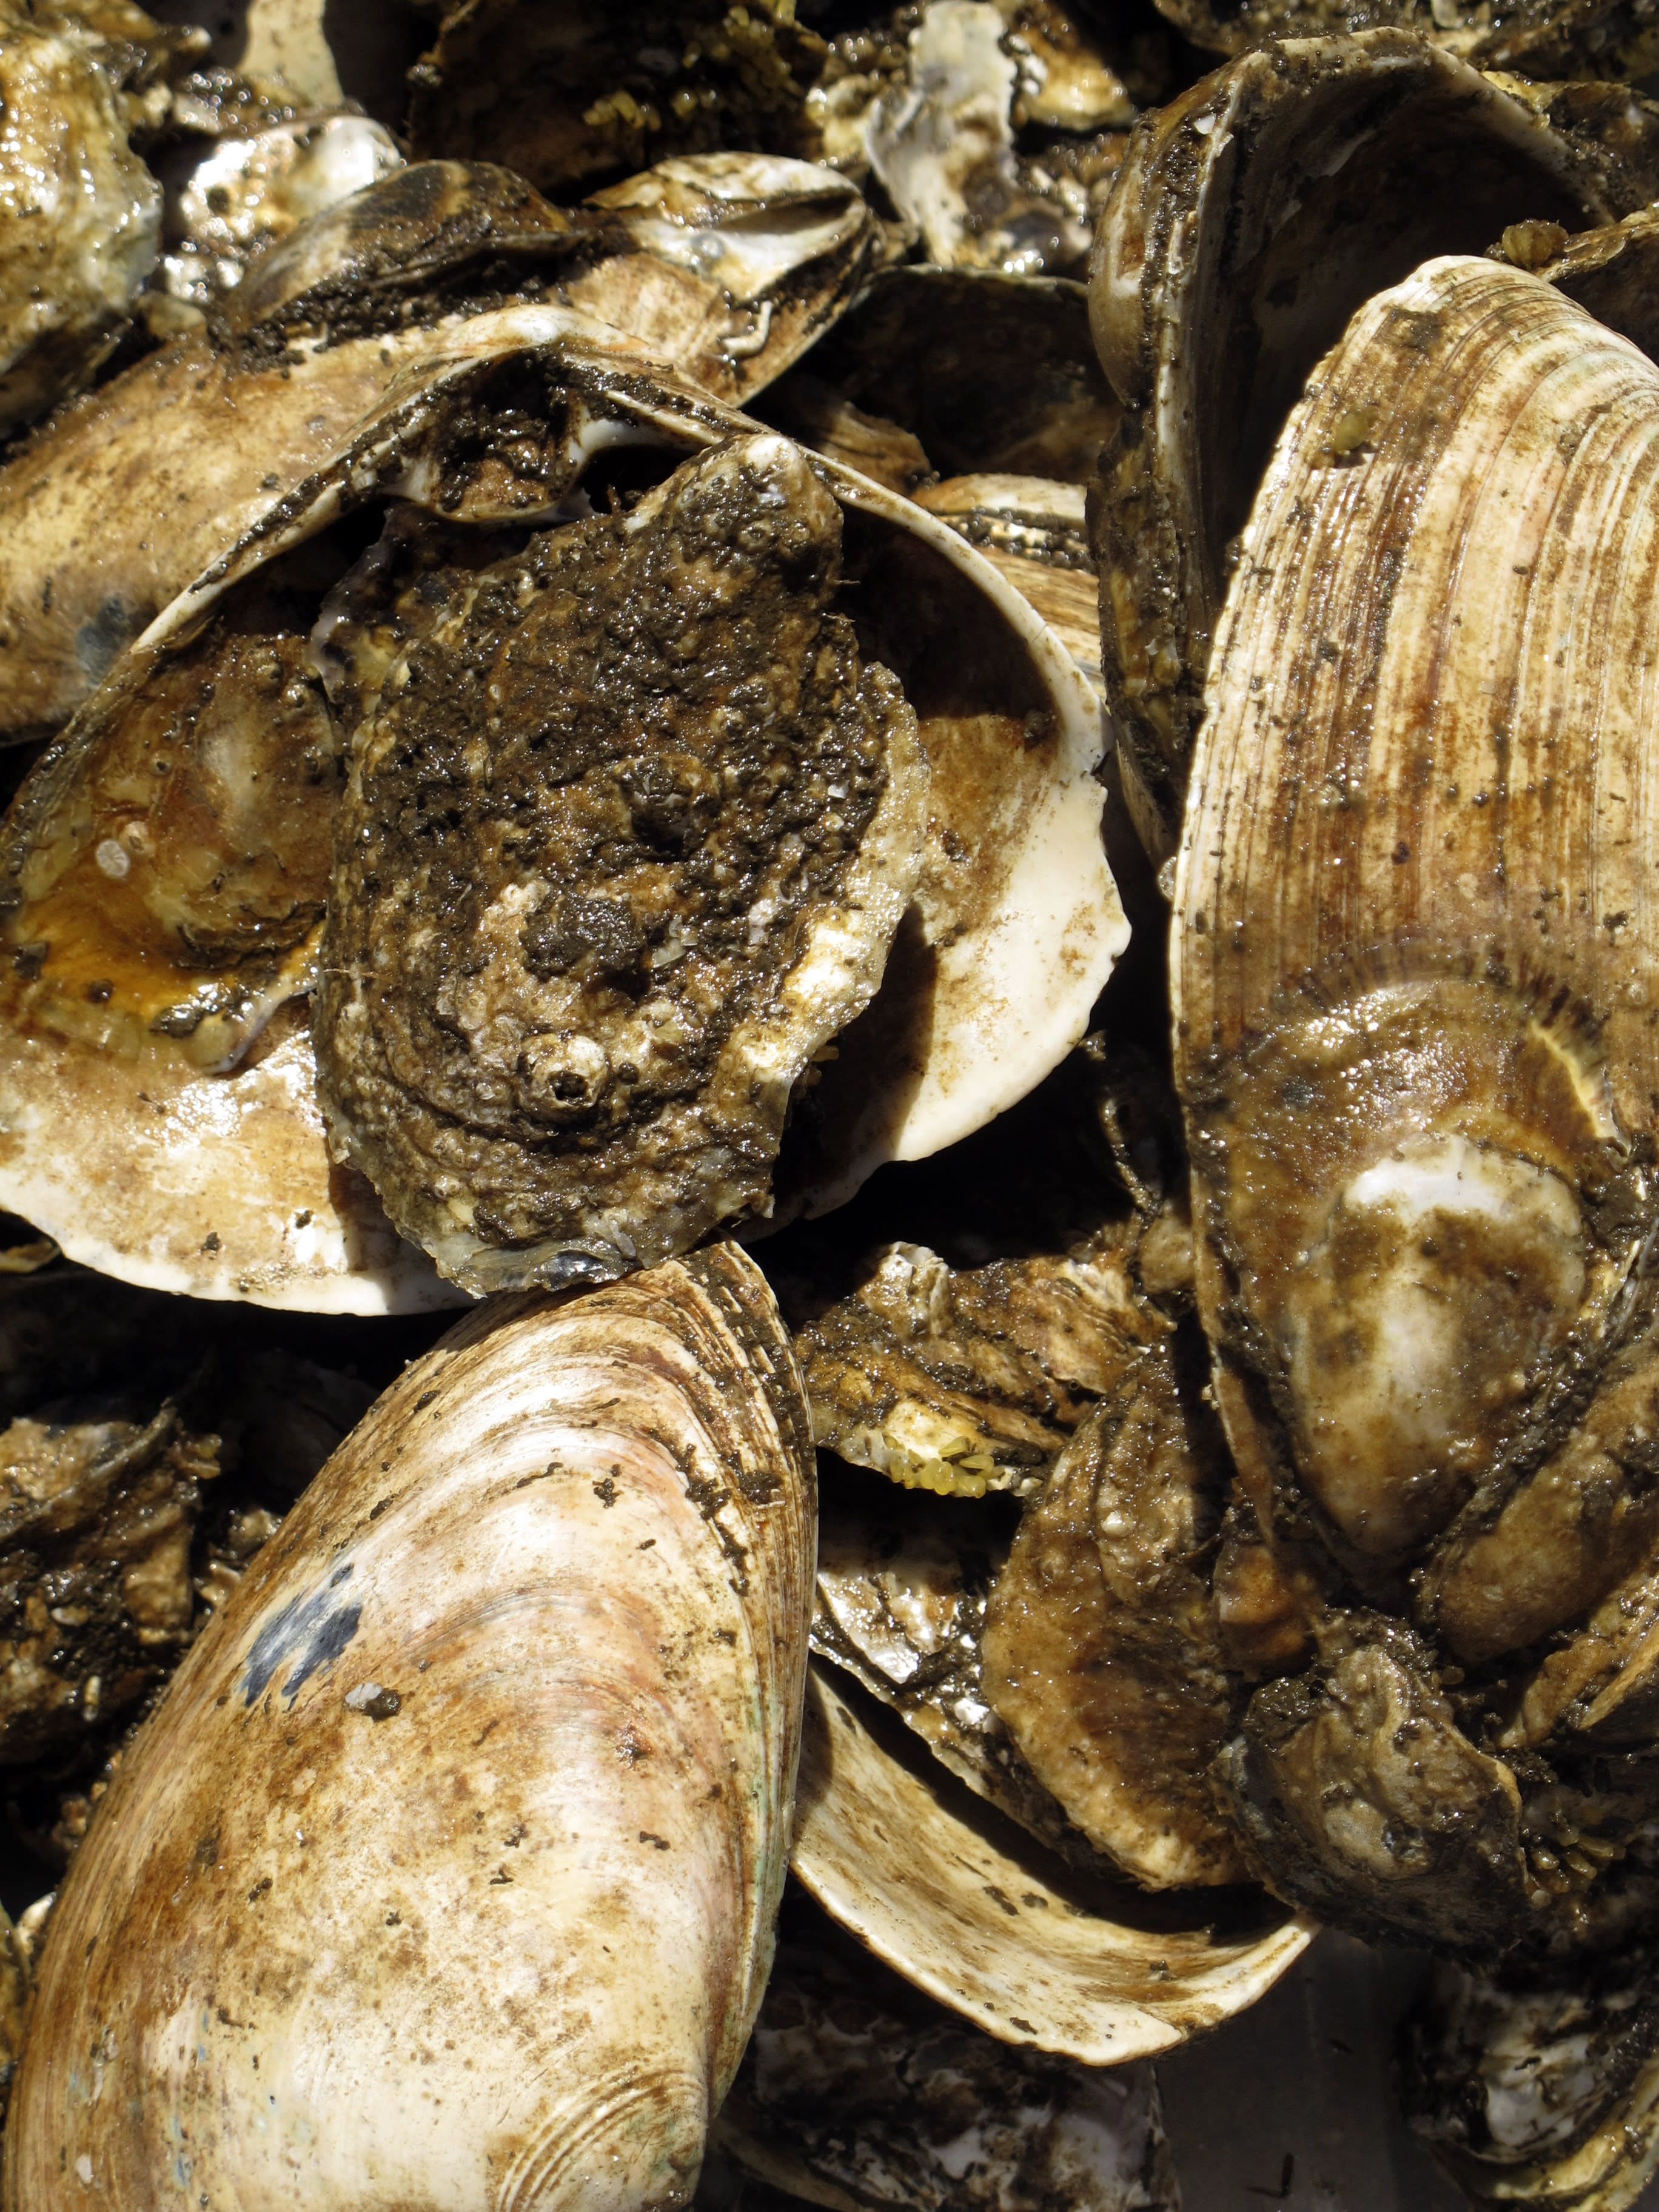 State moves forward with oyster research for cleaner water